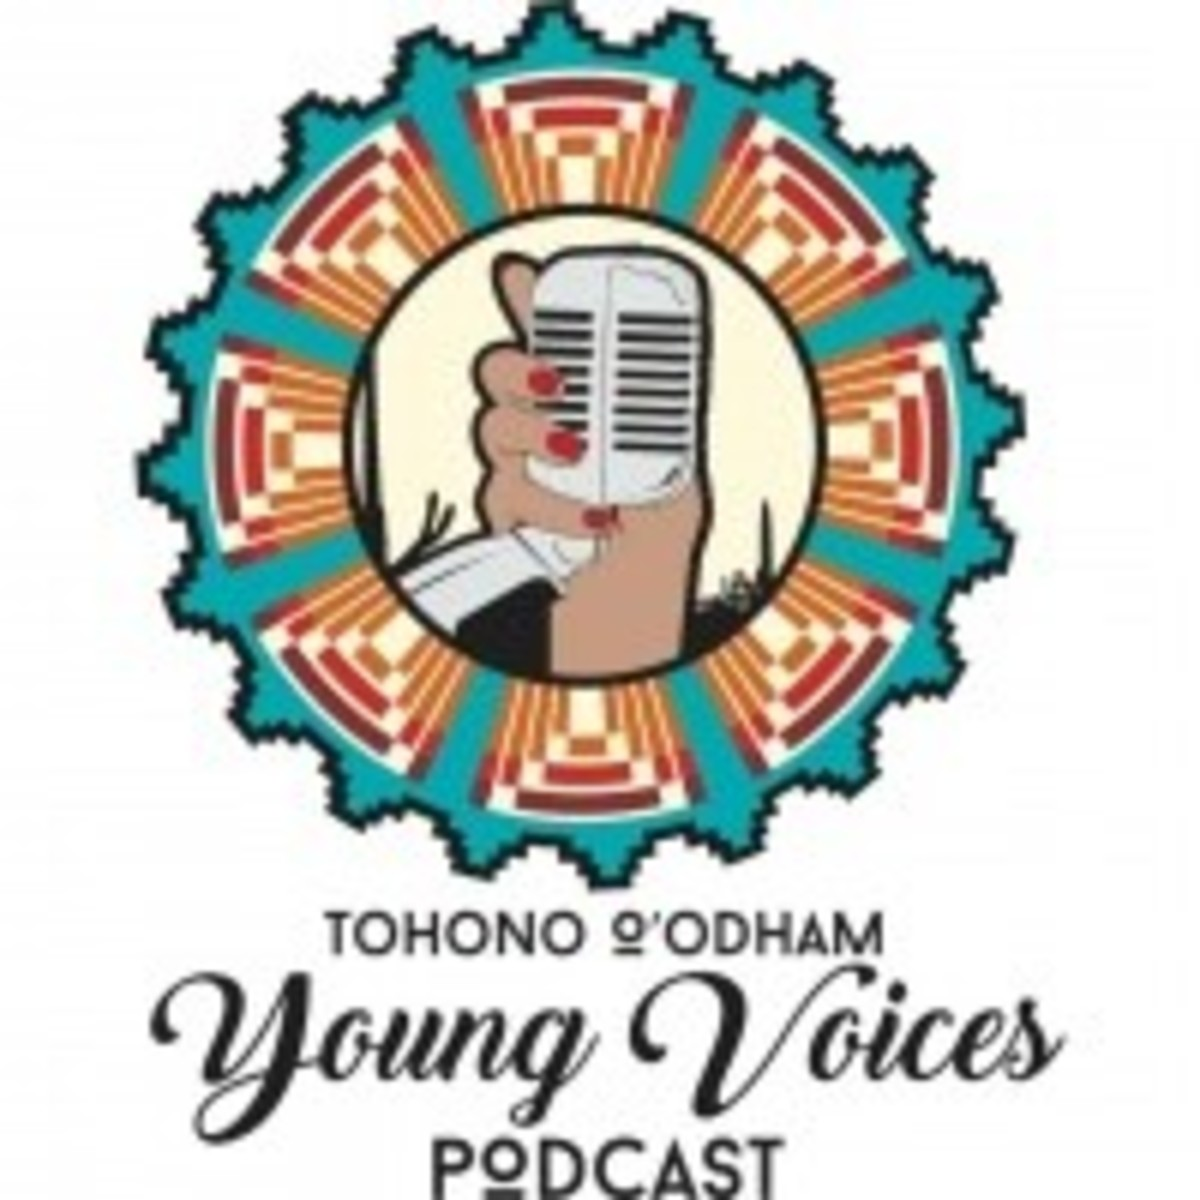 Tohono odham young voices - Native Podcasts